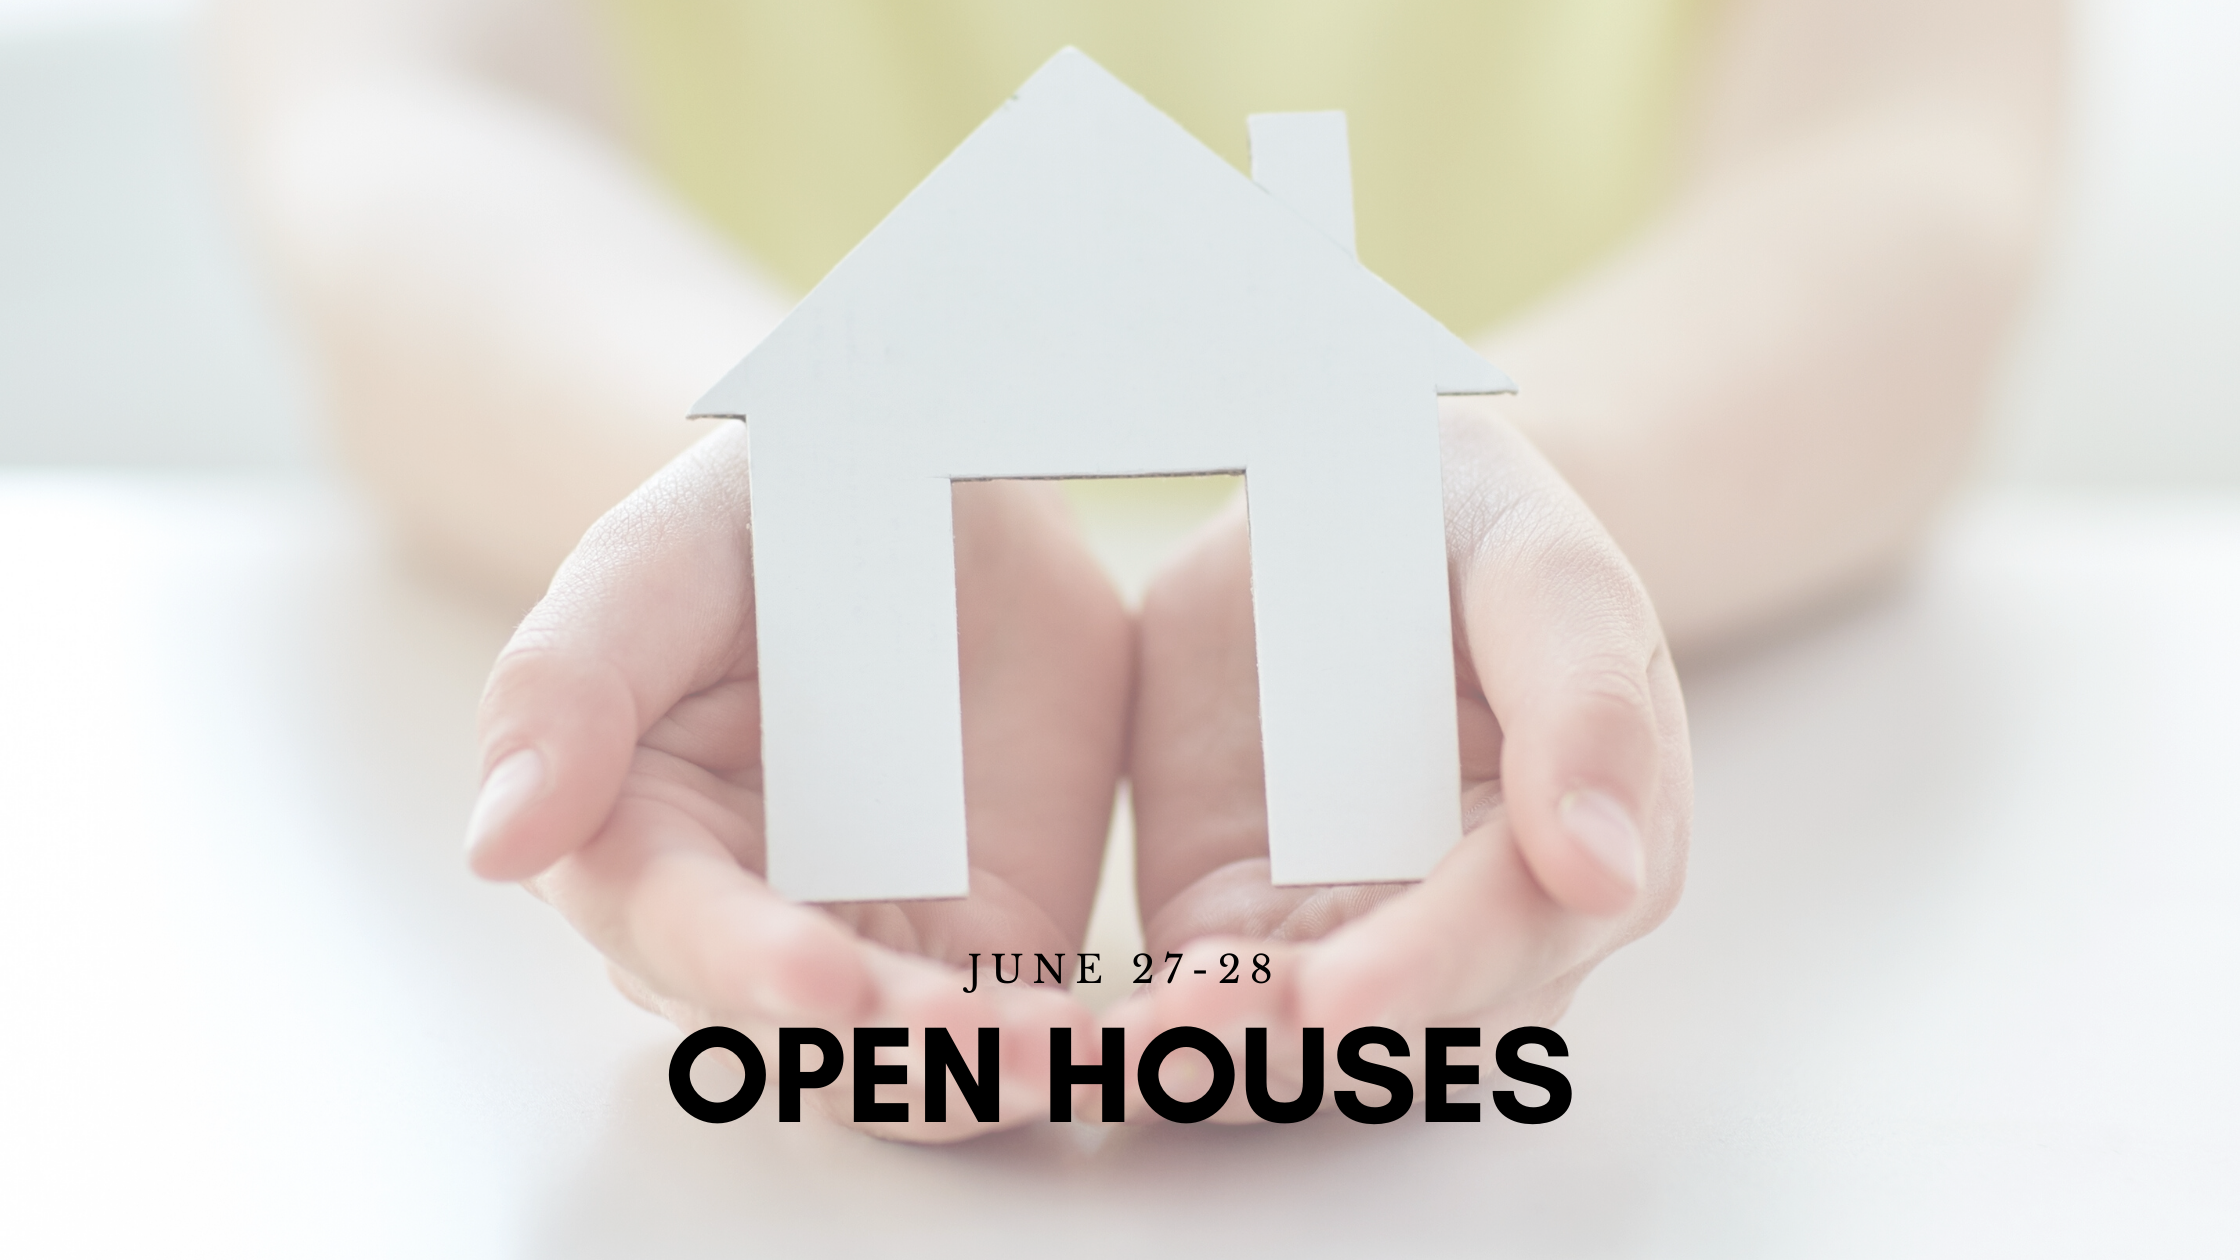 Open Houses this weekend (June 27-28)